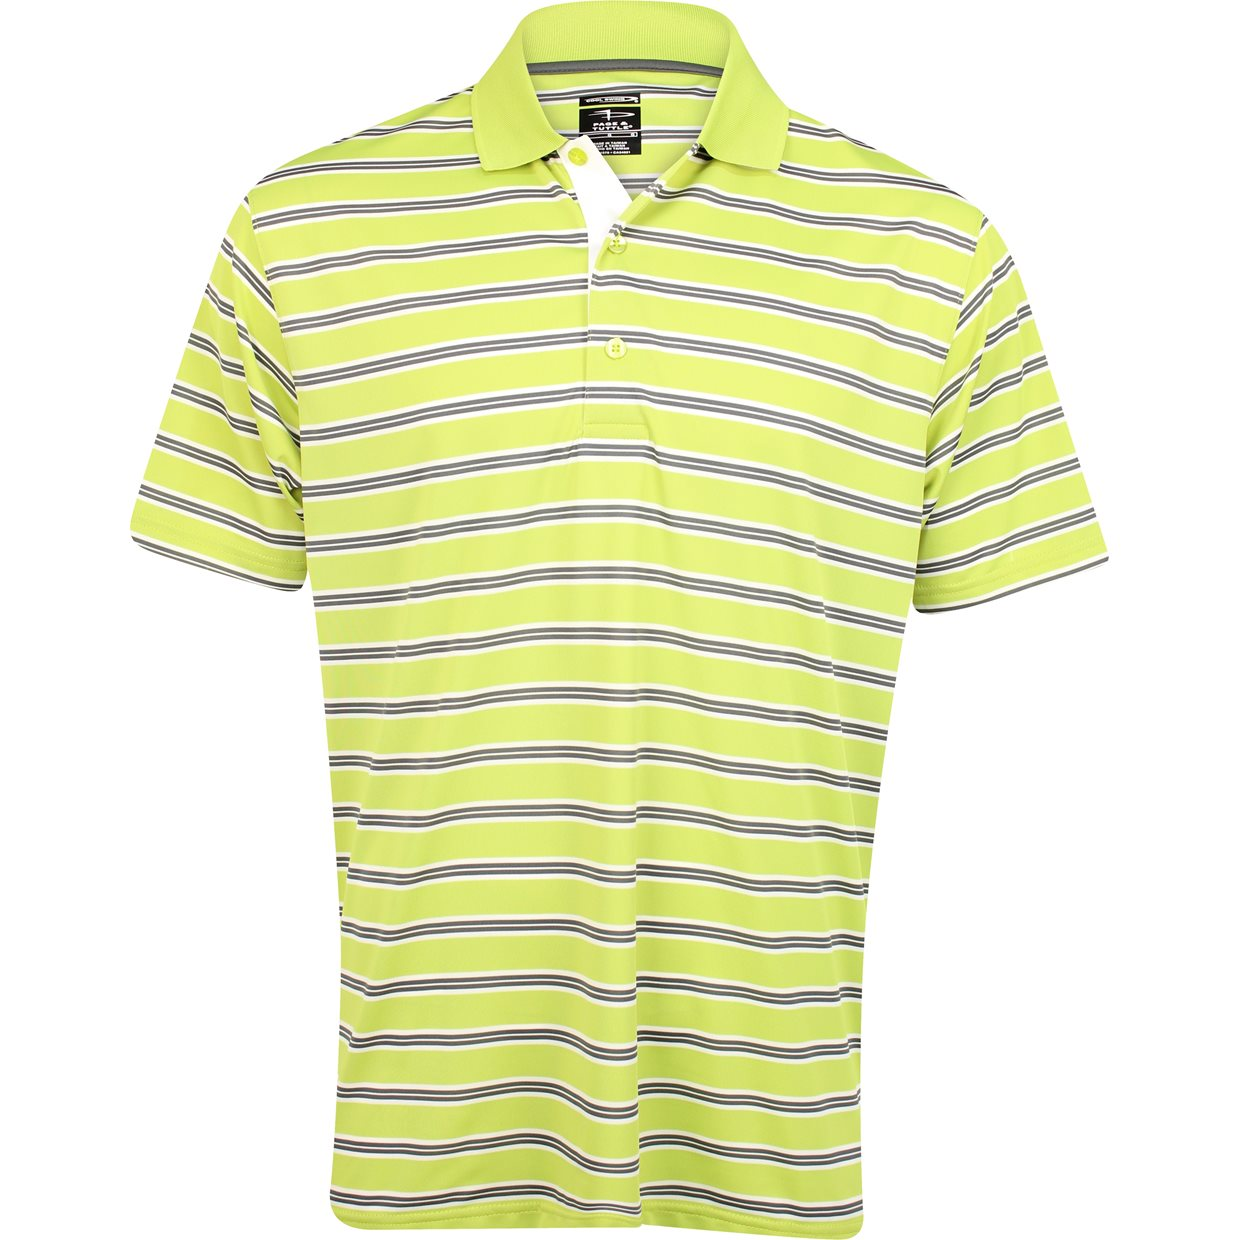 Page Tuttle Simple Yarn Dye Stripe Interlock Shirt